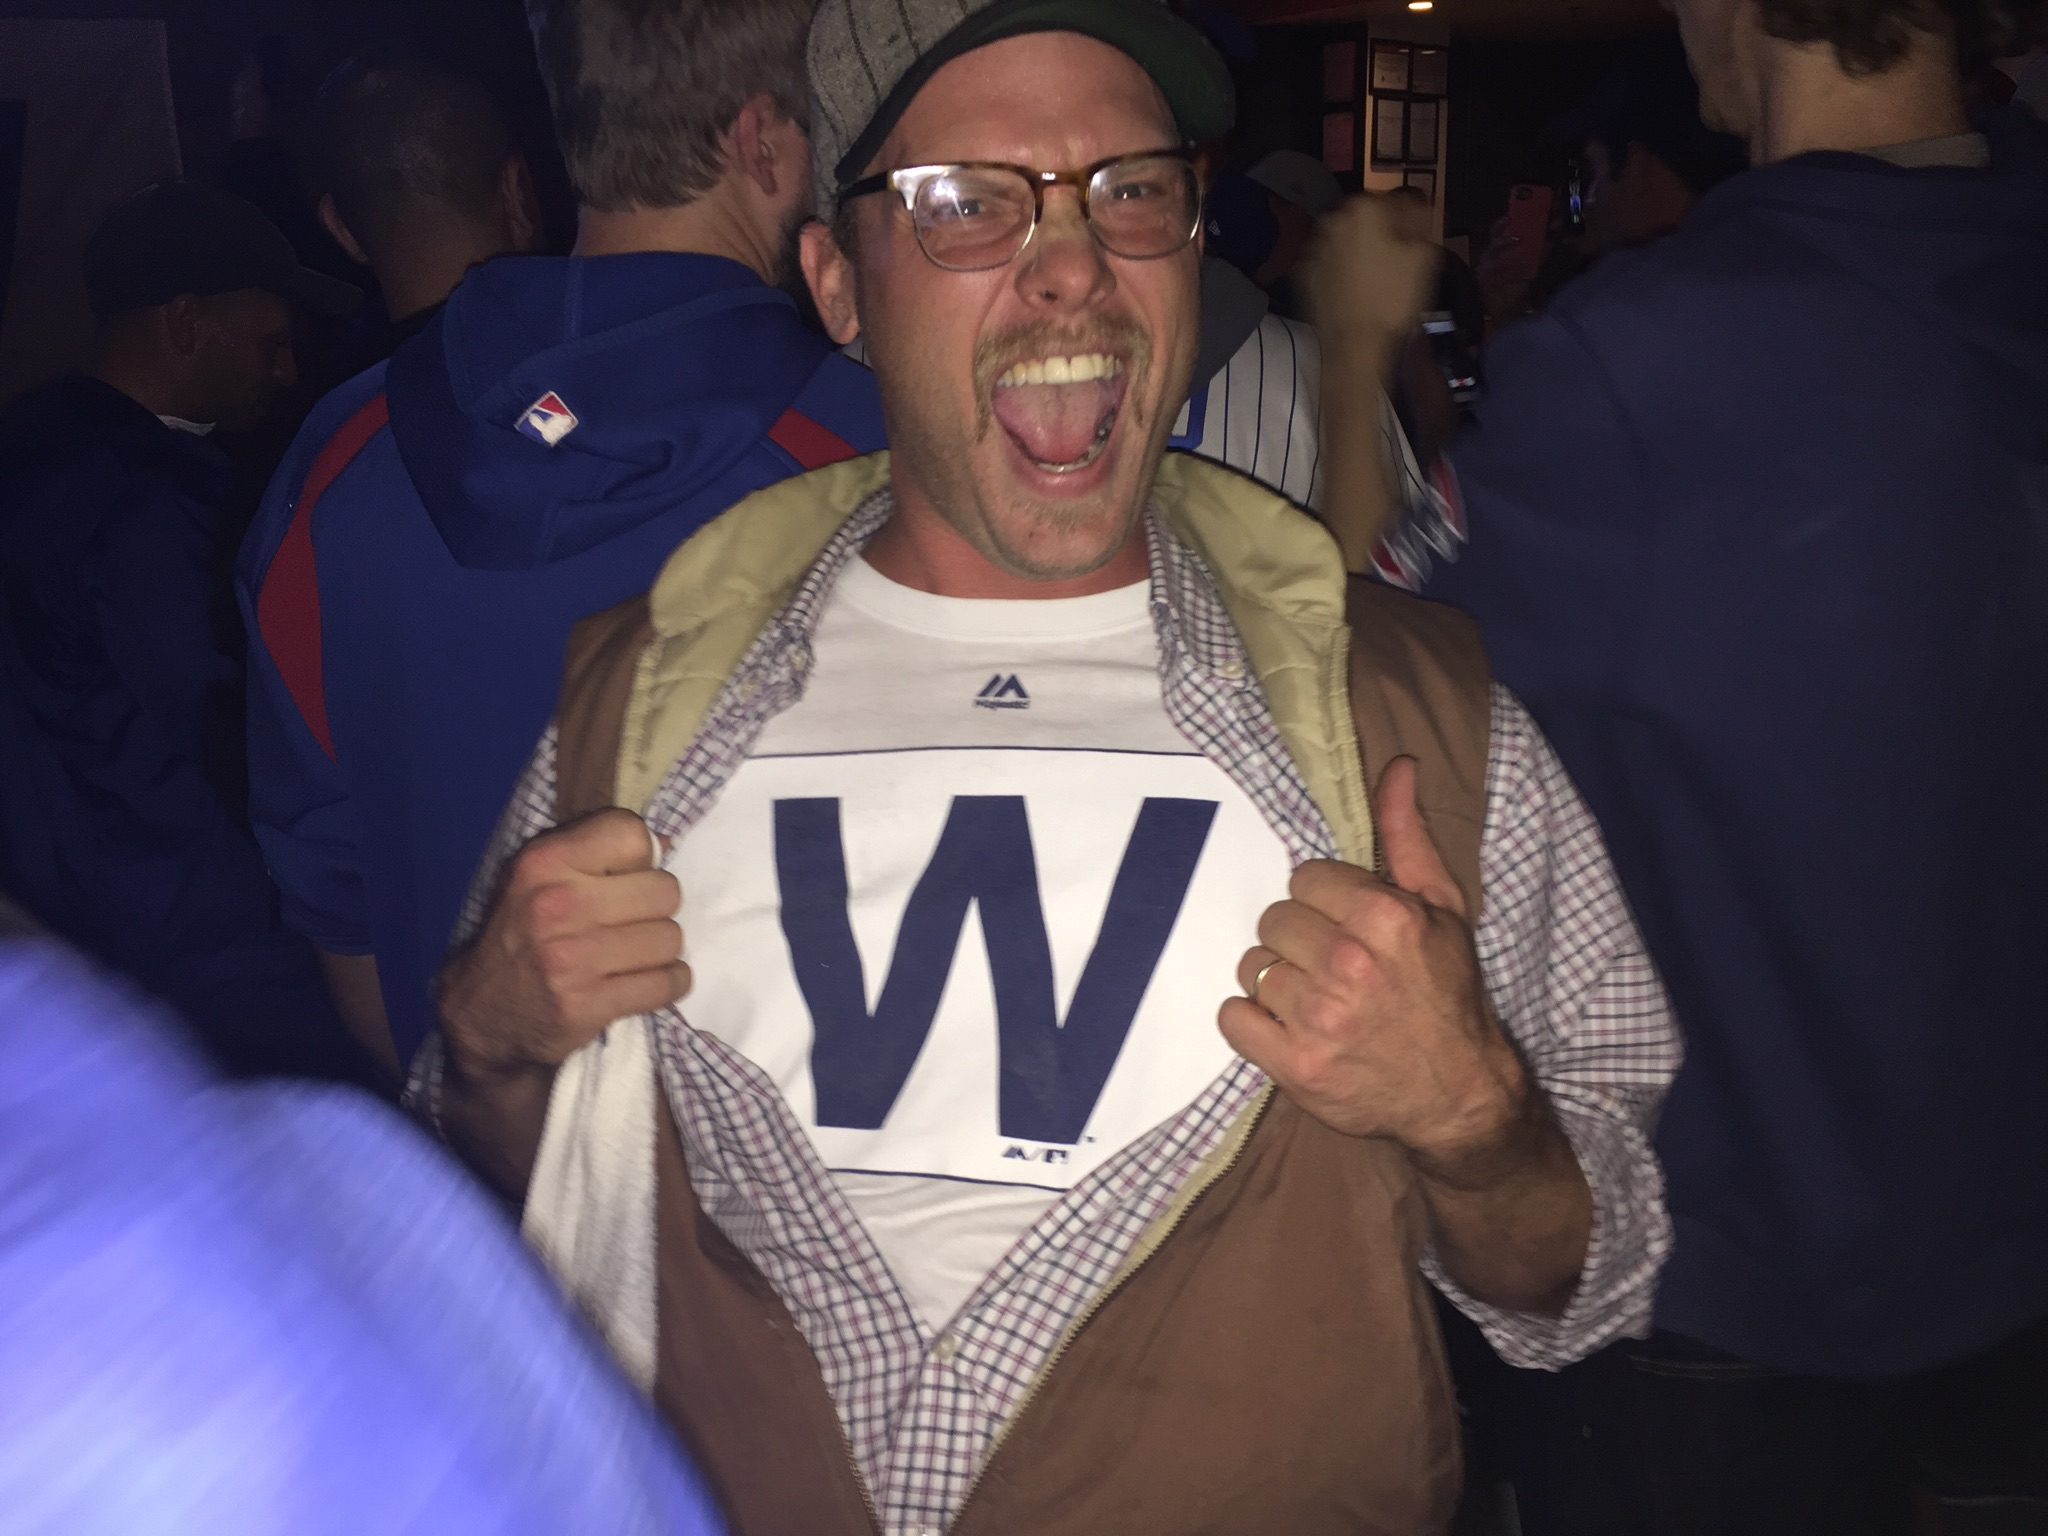 Me and Grandpa's vest flying the W after Game 5